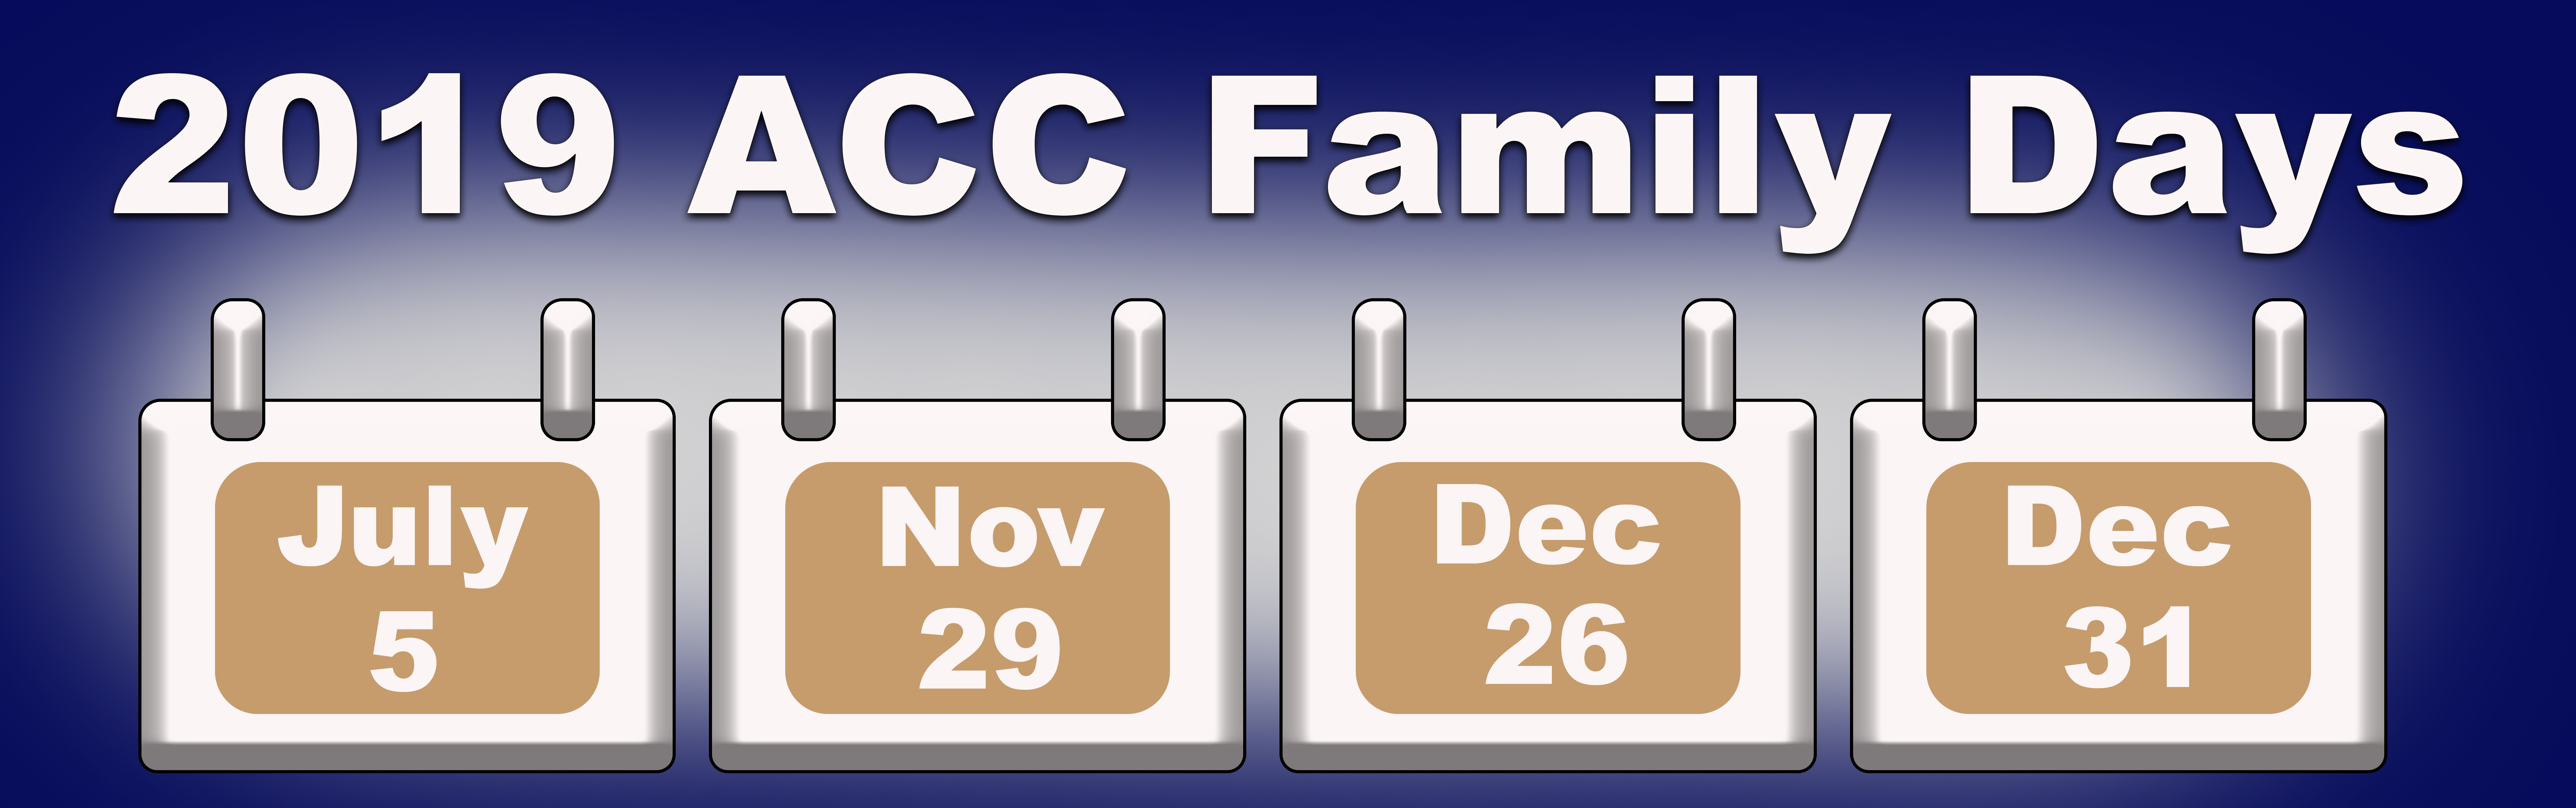 Graphic of Air Combat Command Family Days Calendar